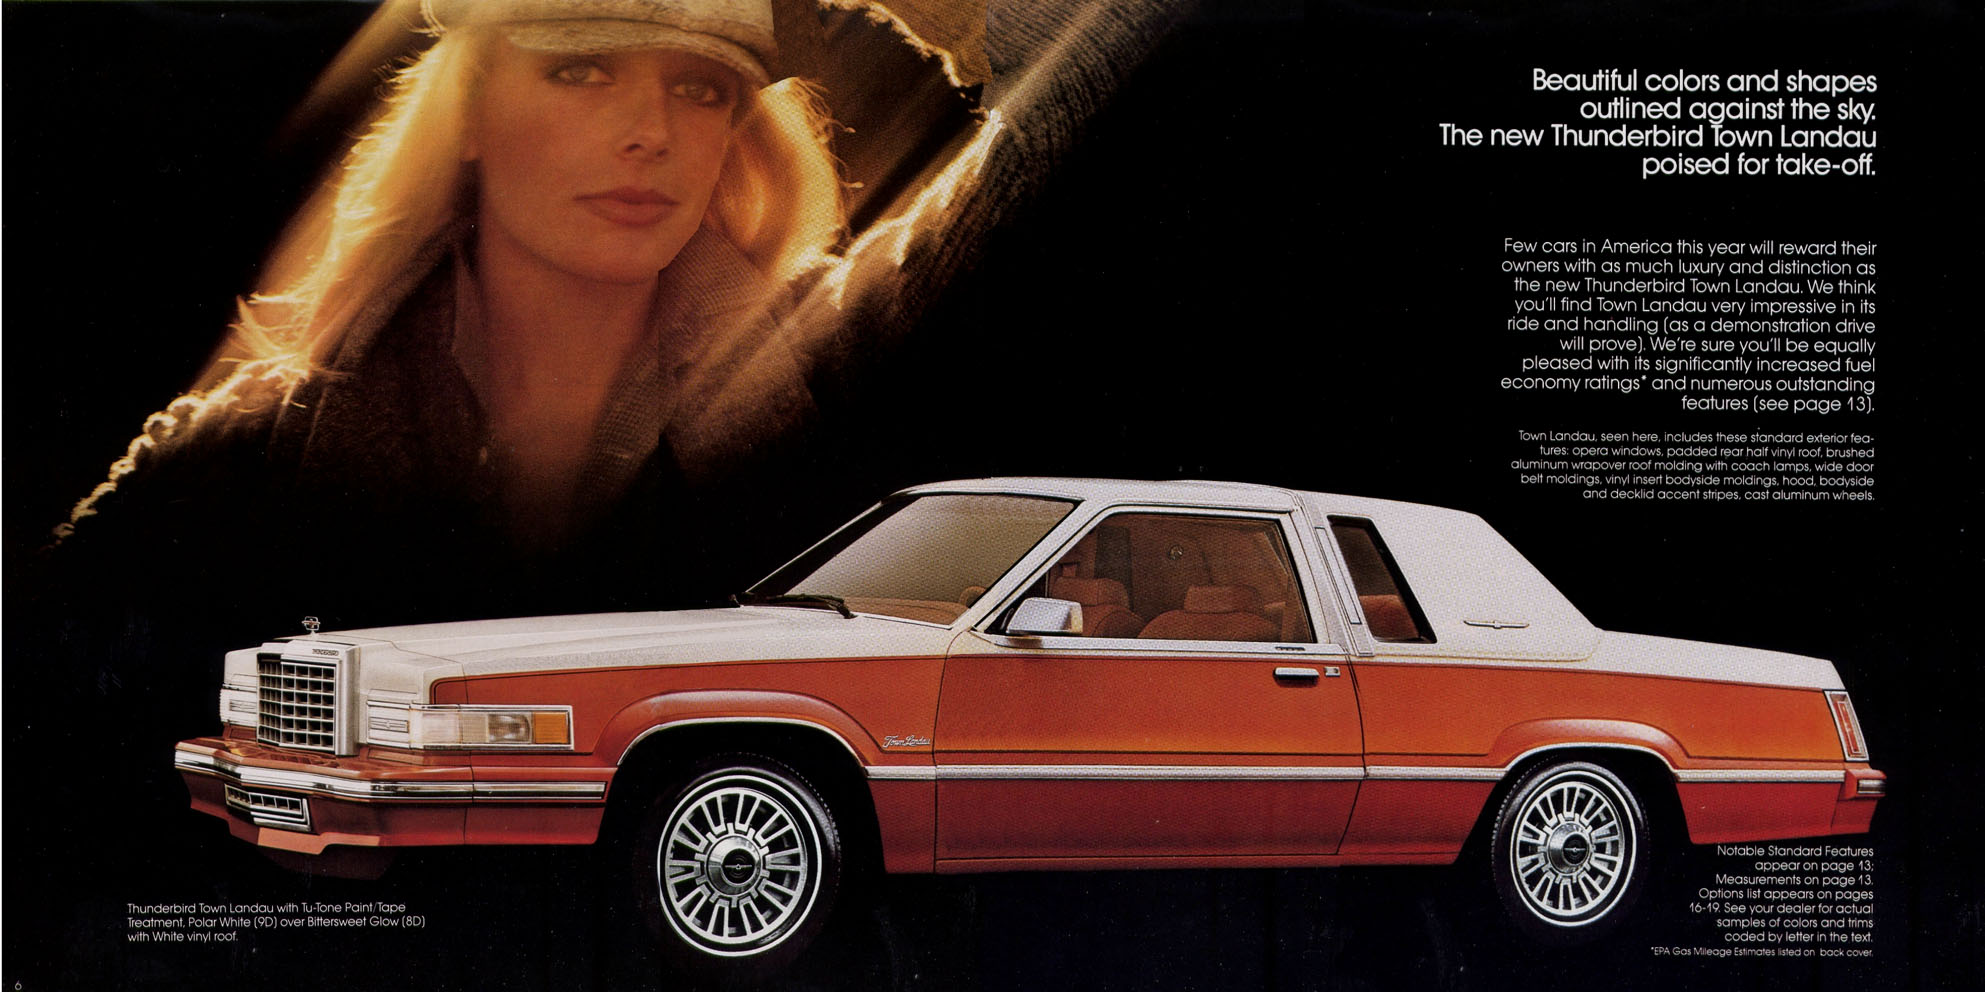 1980 Ford Thunderbird ad